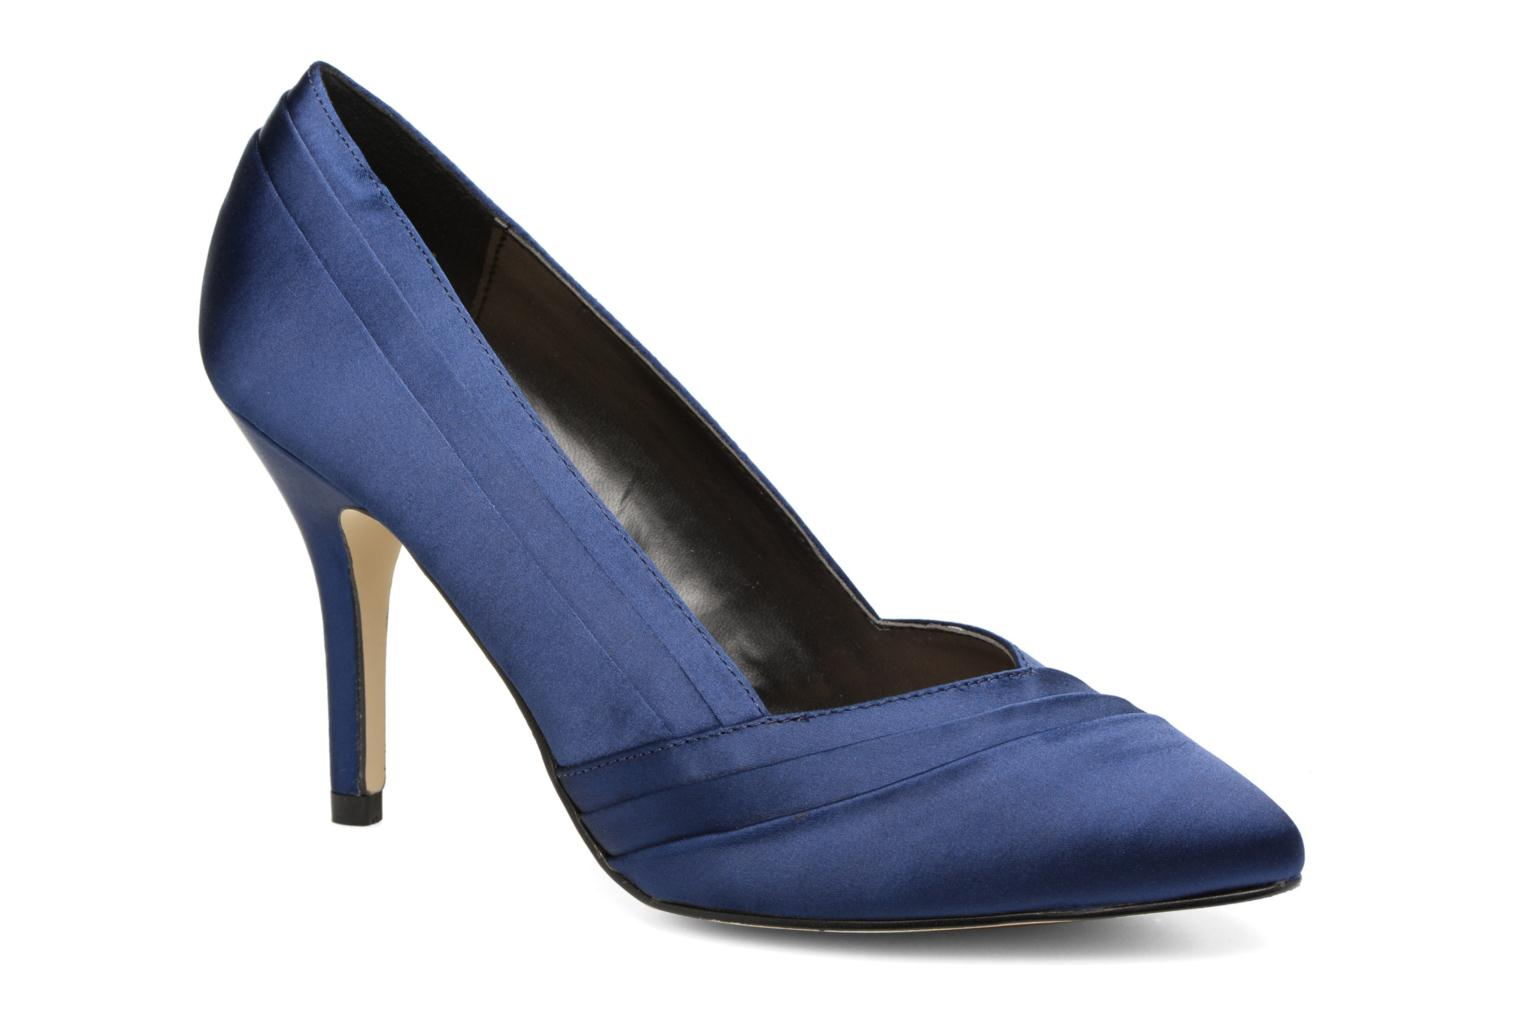 Marques Chaussure femme Menbur femme Cortecillas Mid night blue